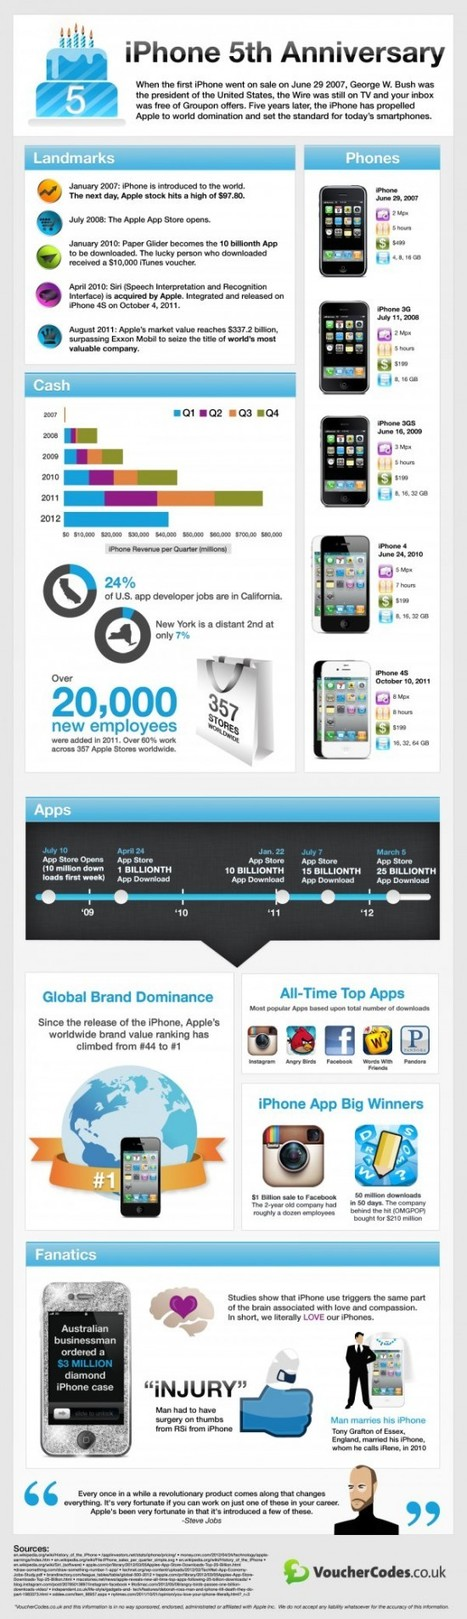 Celebrating Apple's Gadget 5th iPhone Birthday | Infographics and Social Media | Scoop.it